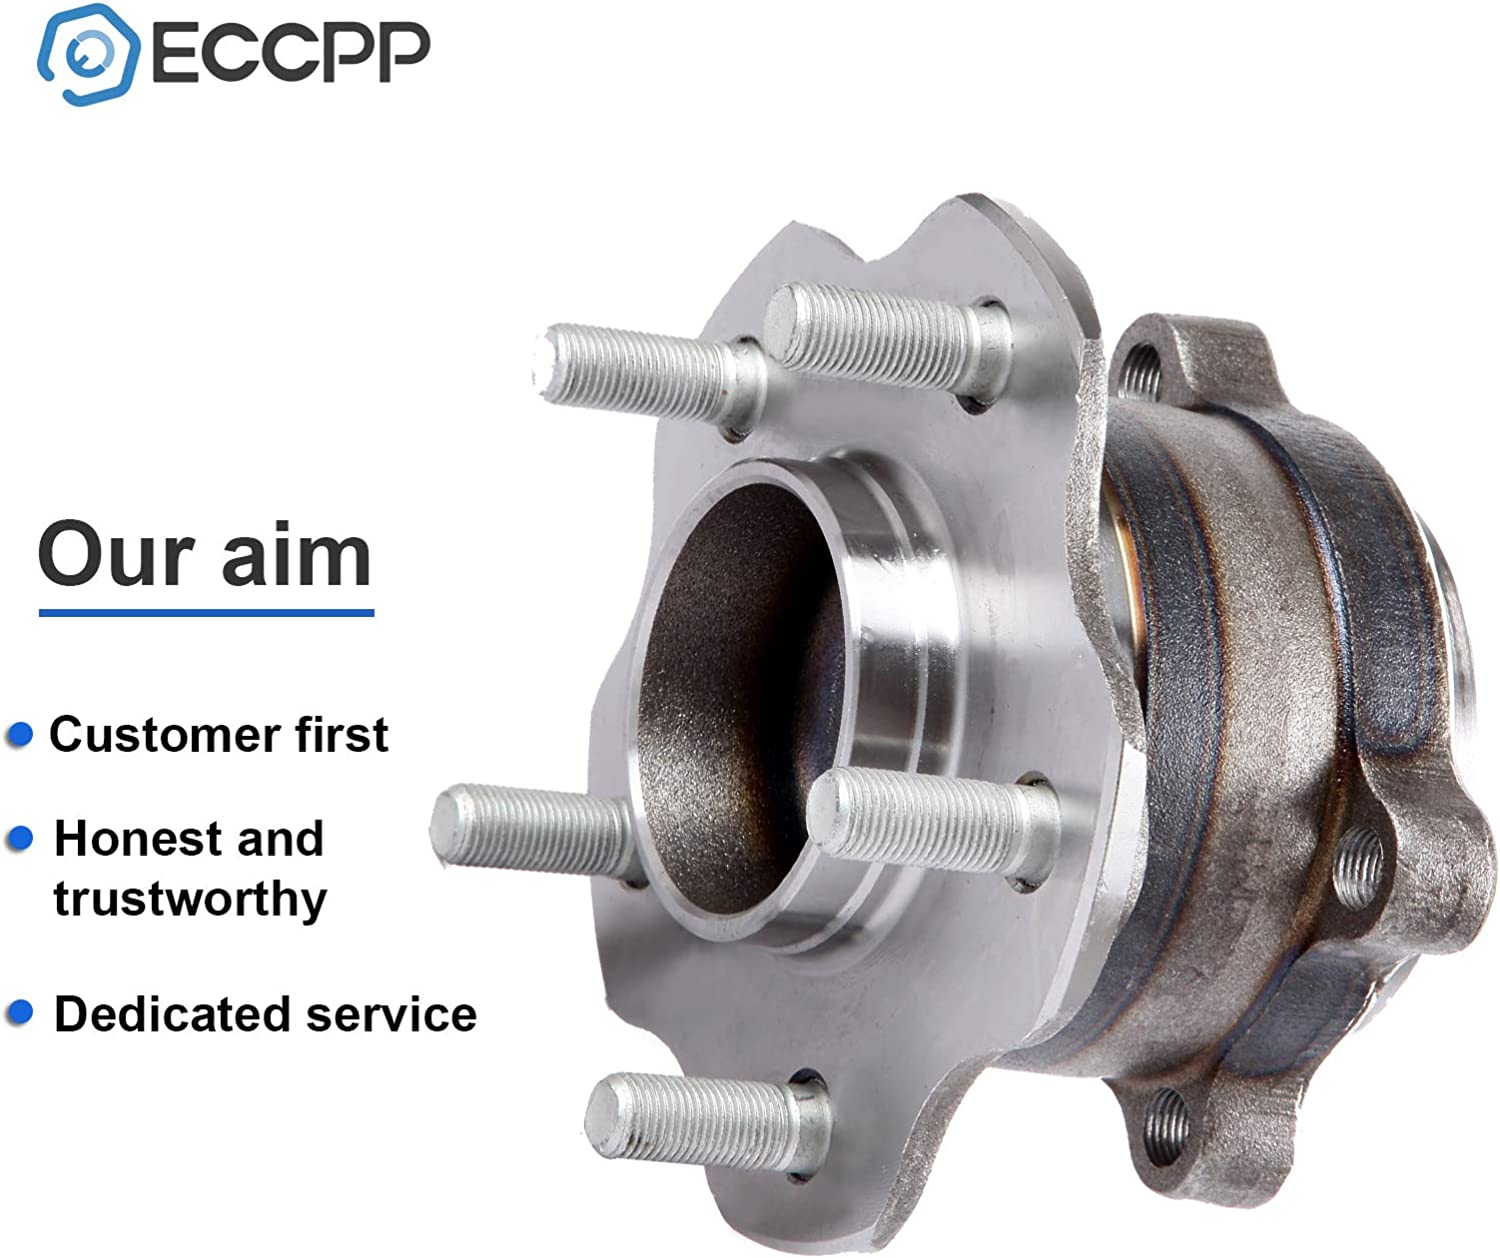 ECCPP Replacement for Pair of 2 New Complete Rear Wheel Hub Bearing Assembly 5 Lugs W//ABS for 2014-2016 Infiniti Nissan 512388x2